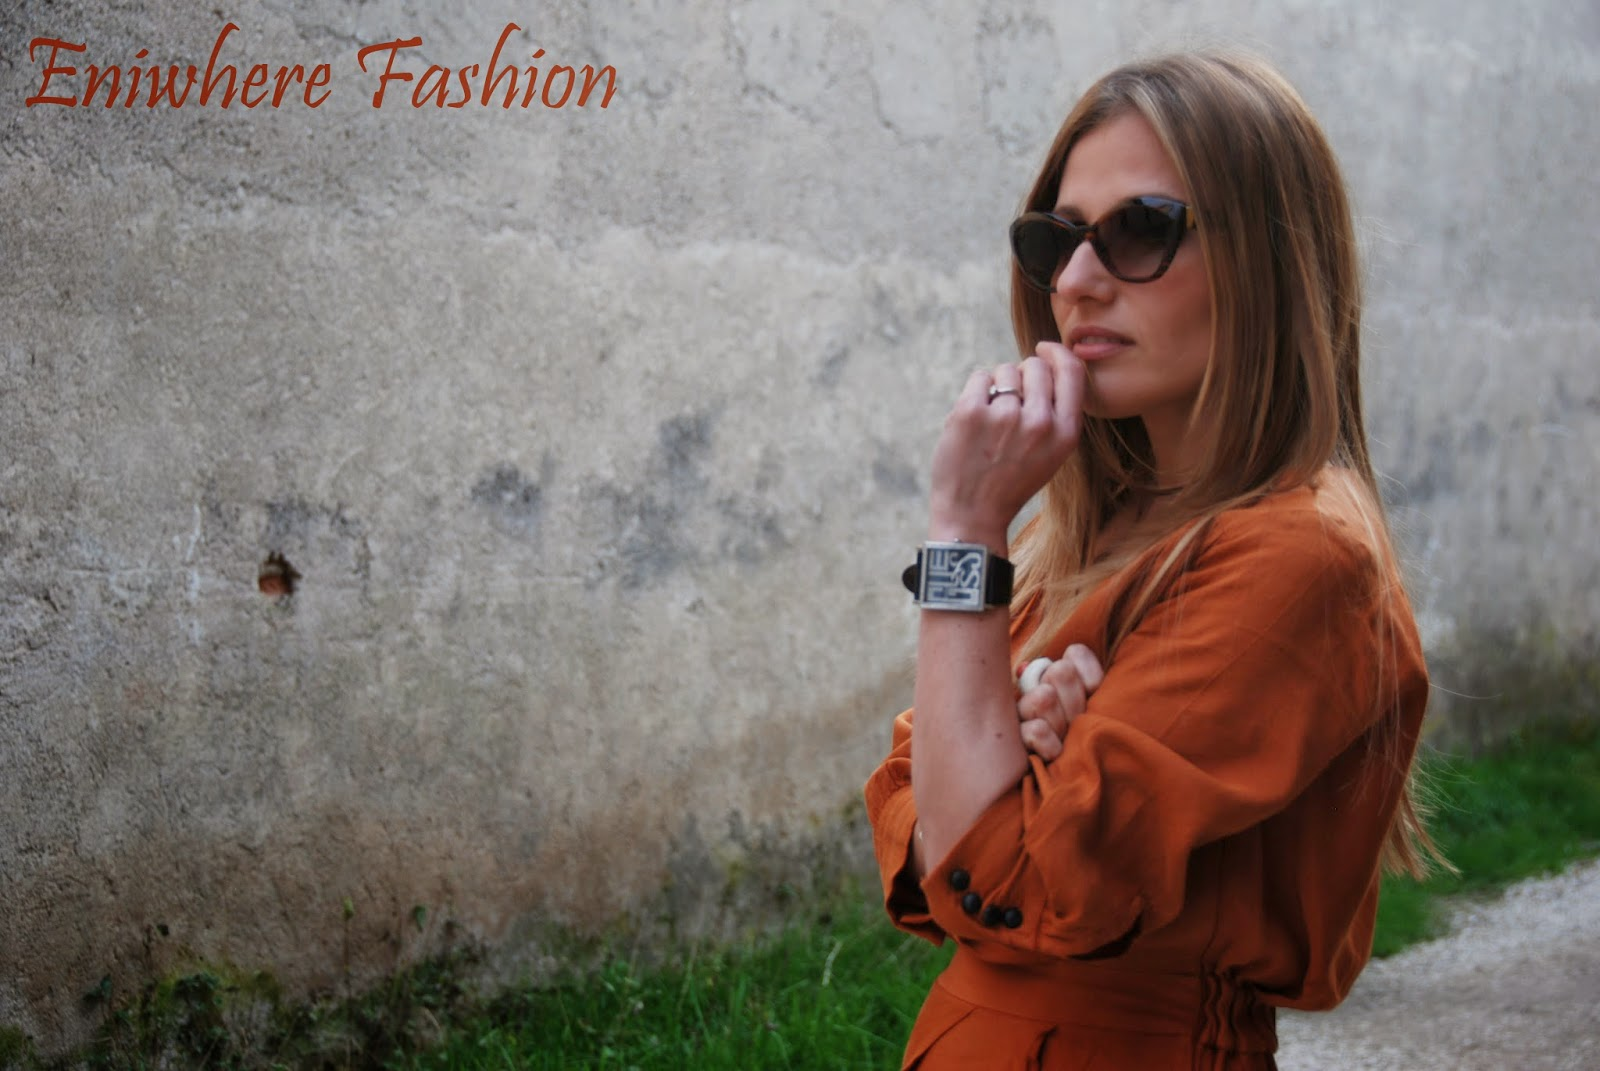 Eniwhere Fashion Beatrice Terzi